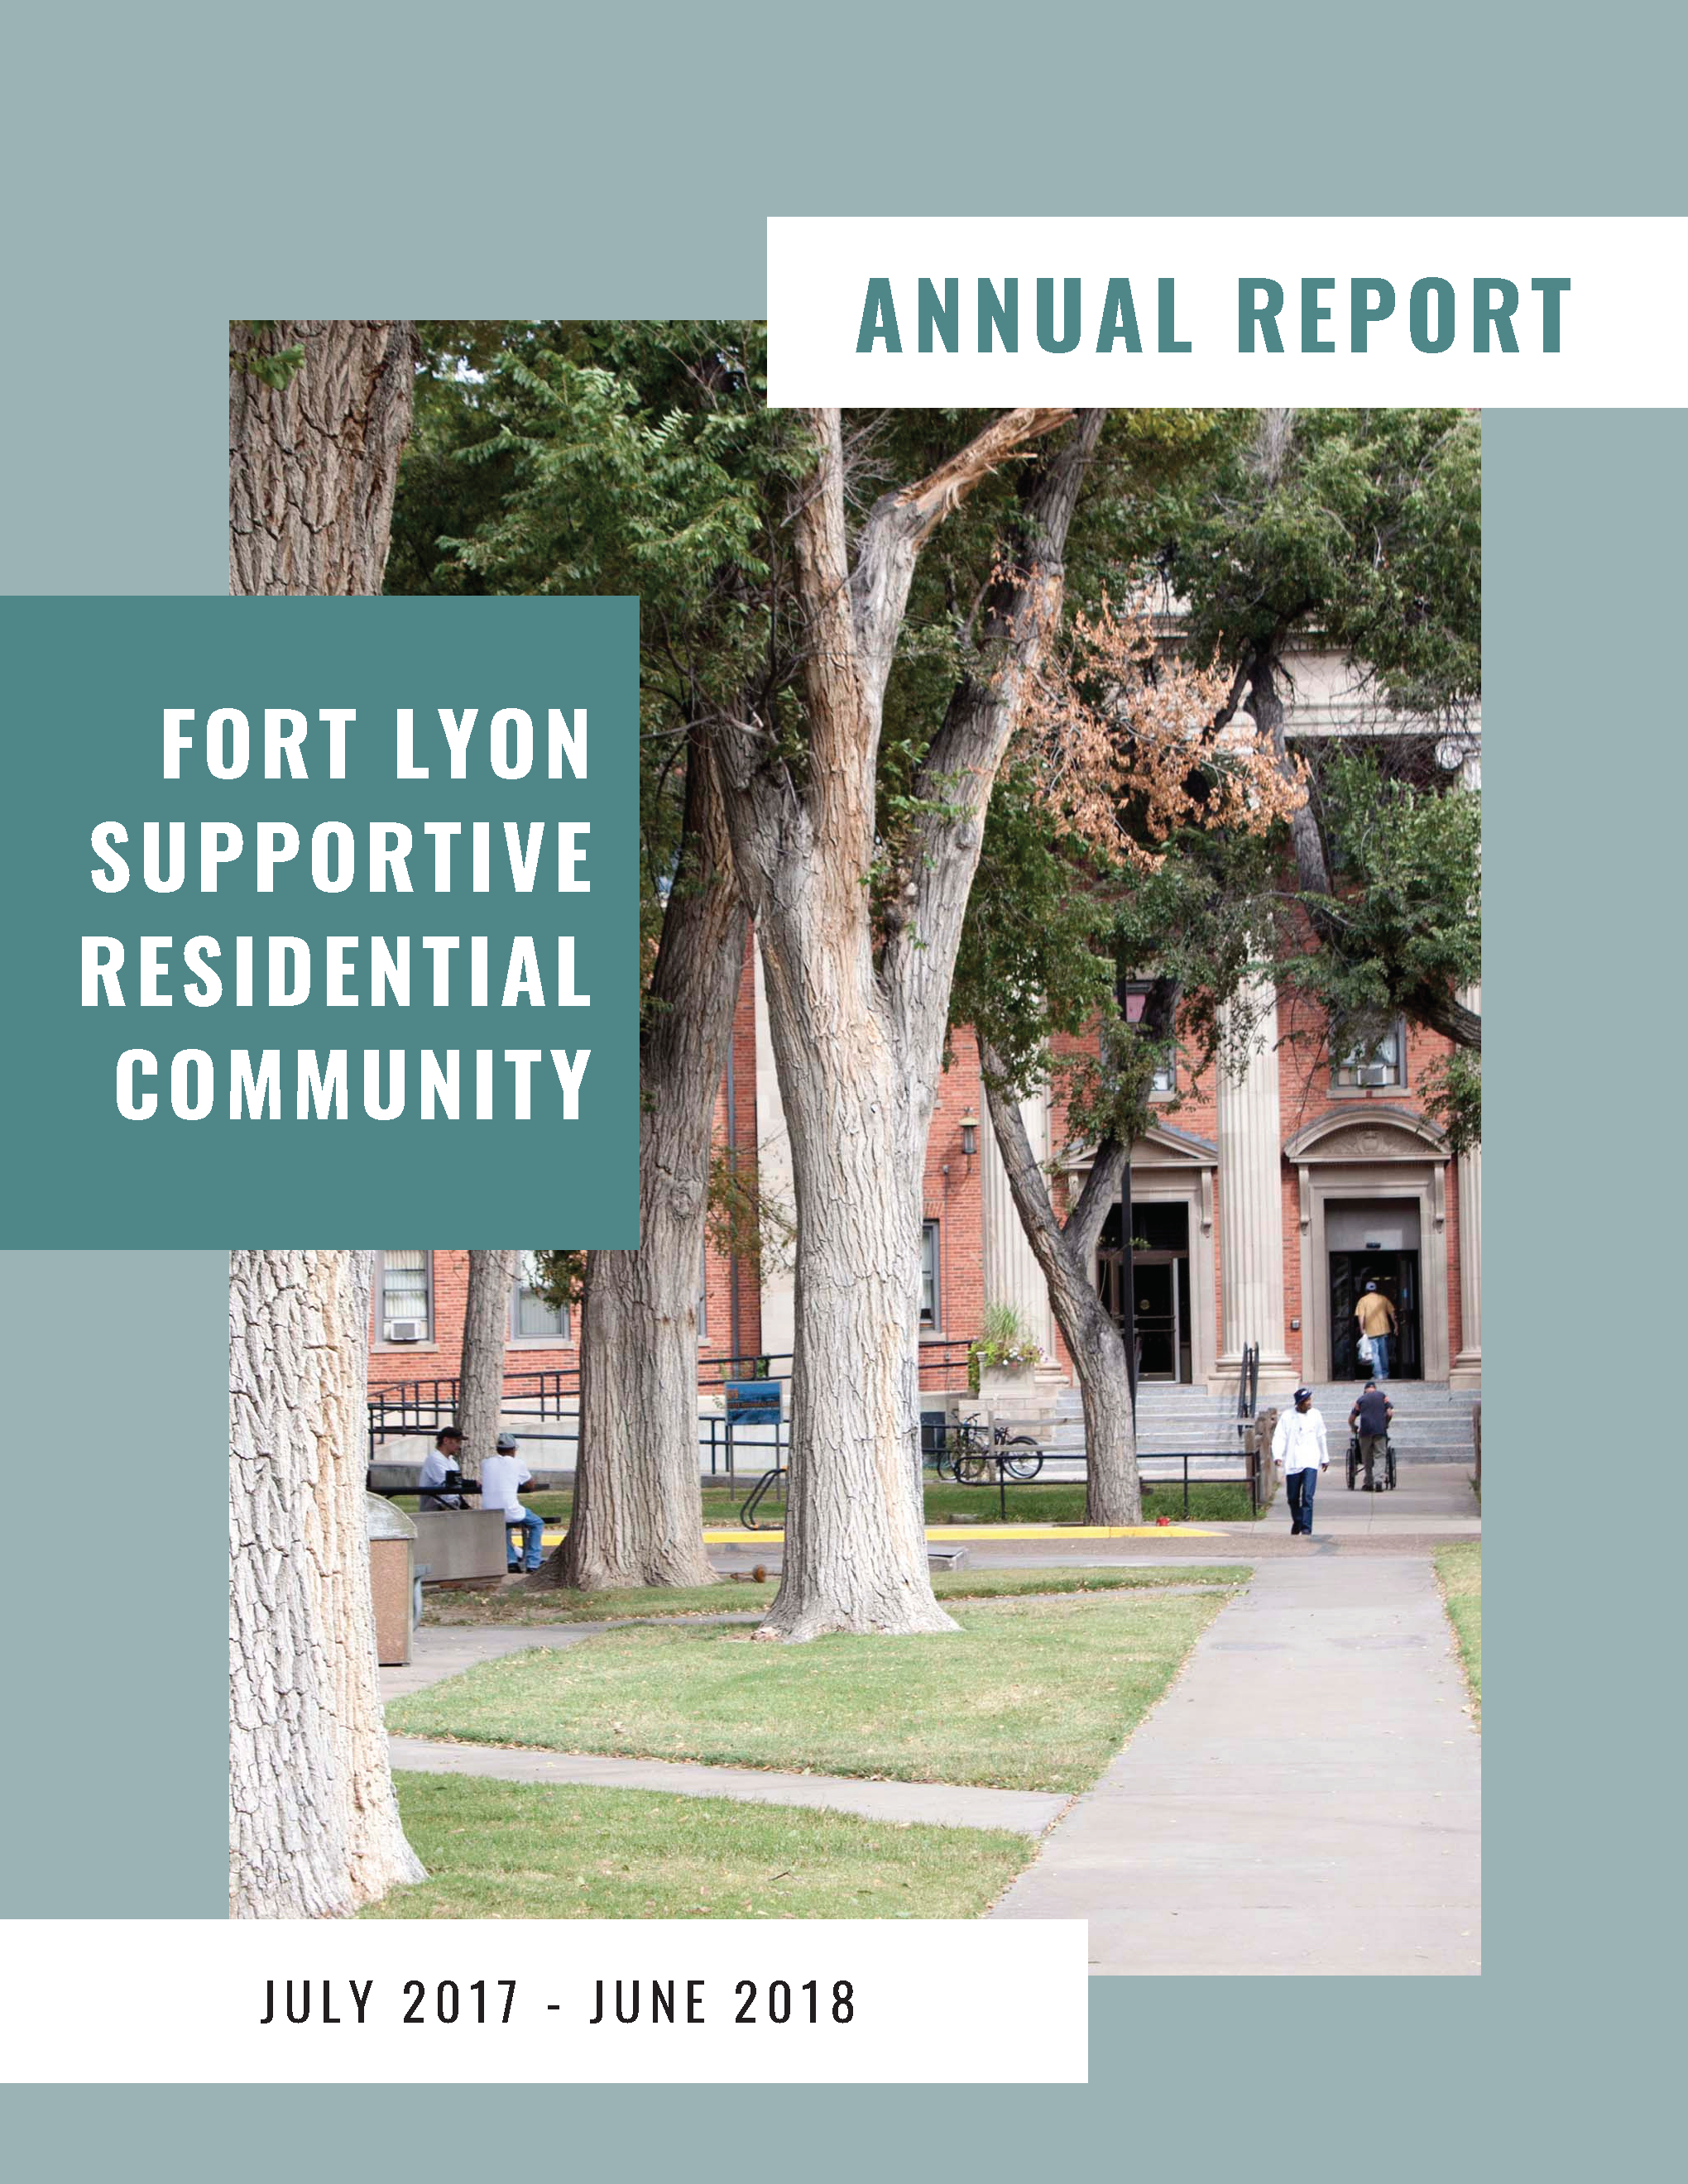 for lyon 2017-2018 annual report cover image